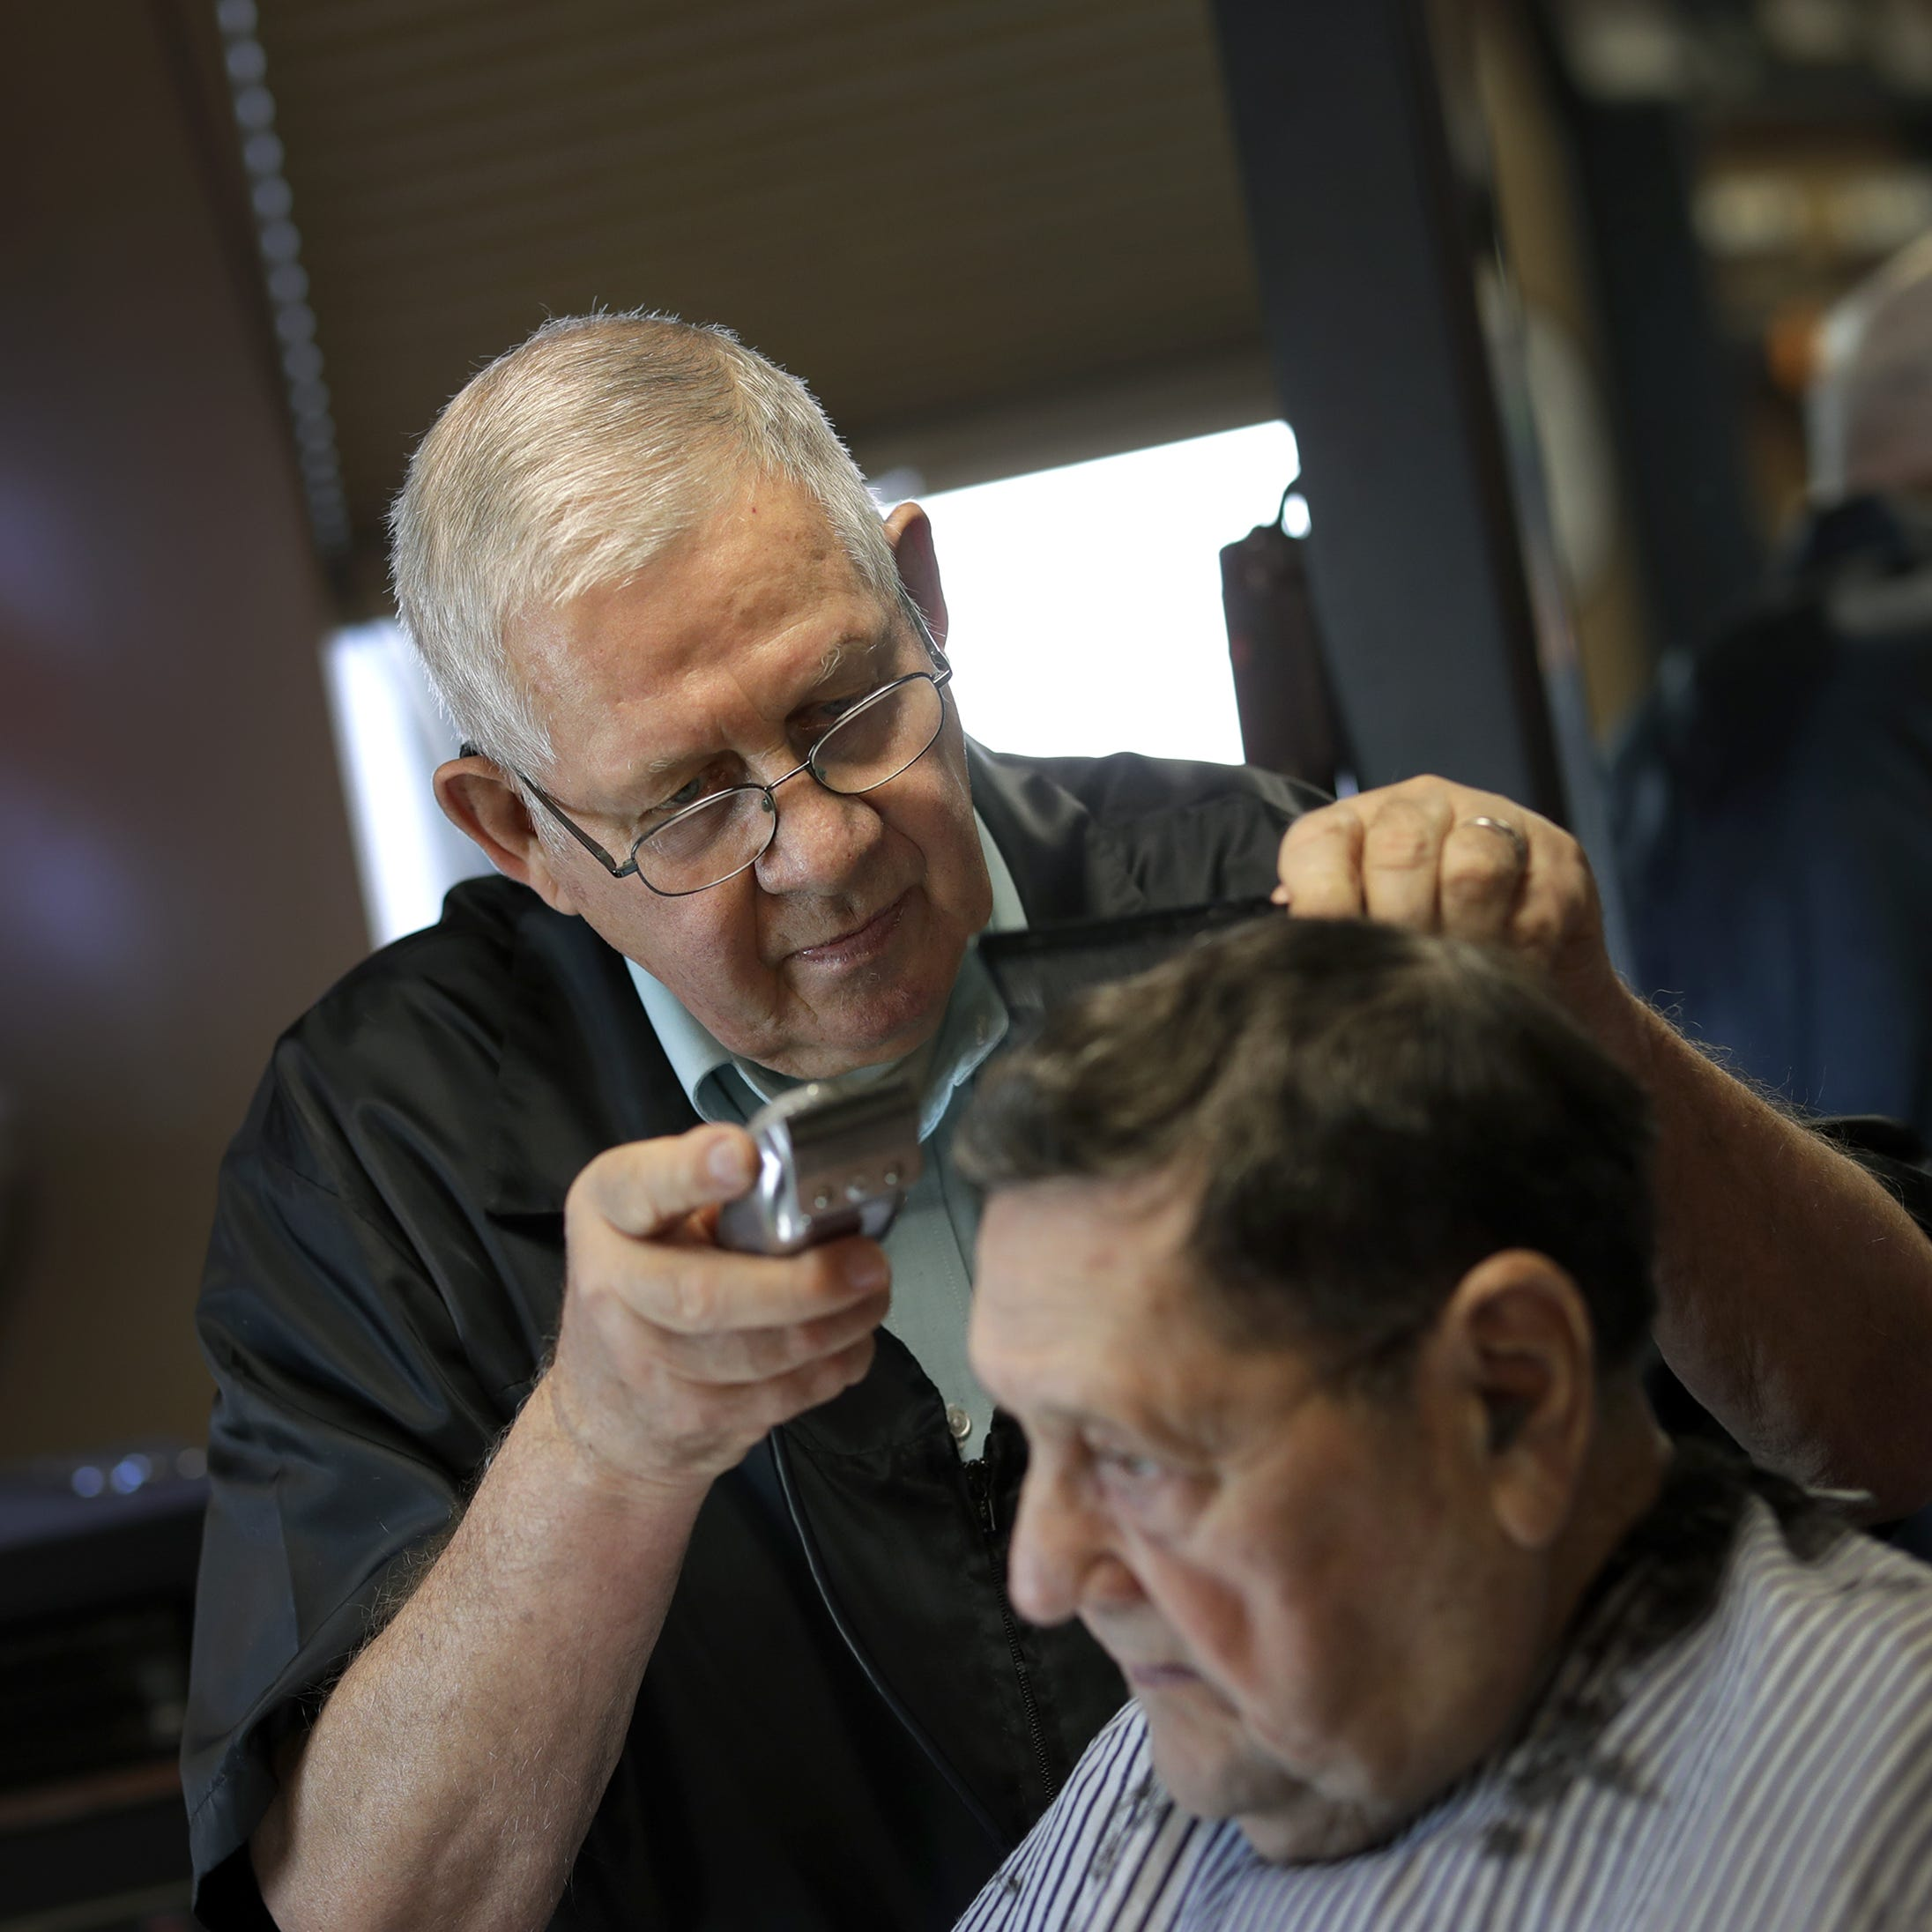 Into their 80s, pair of Greasy Fingers barbers just keep clippin' along